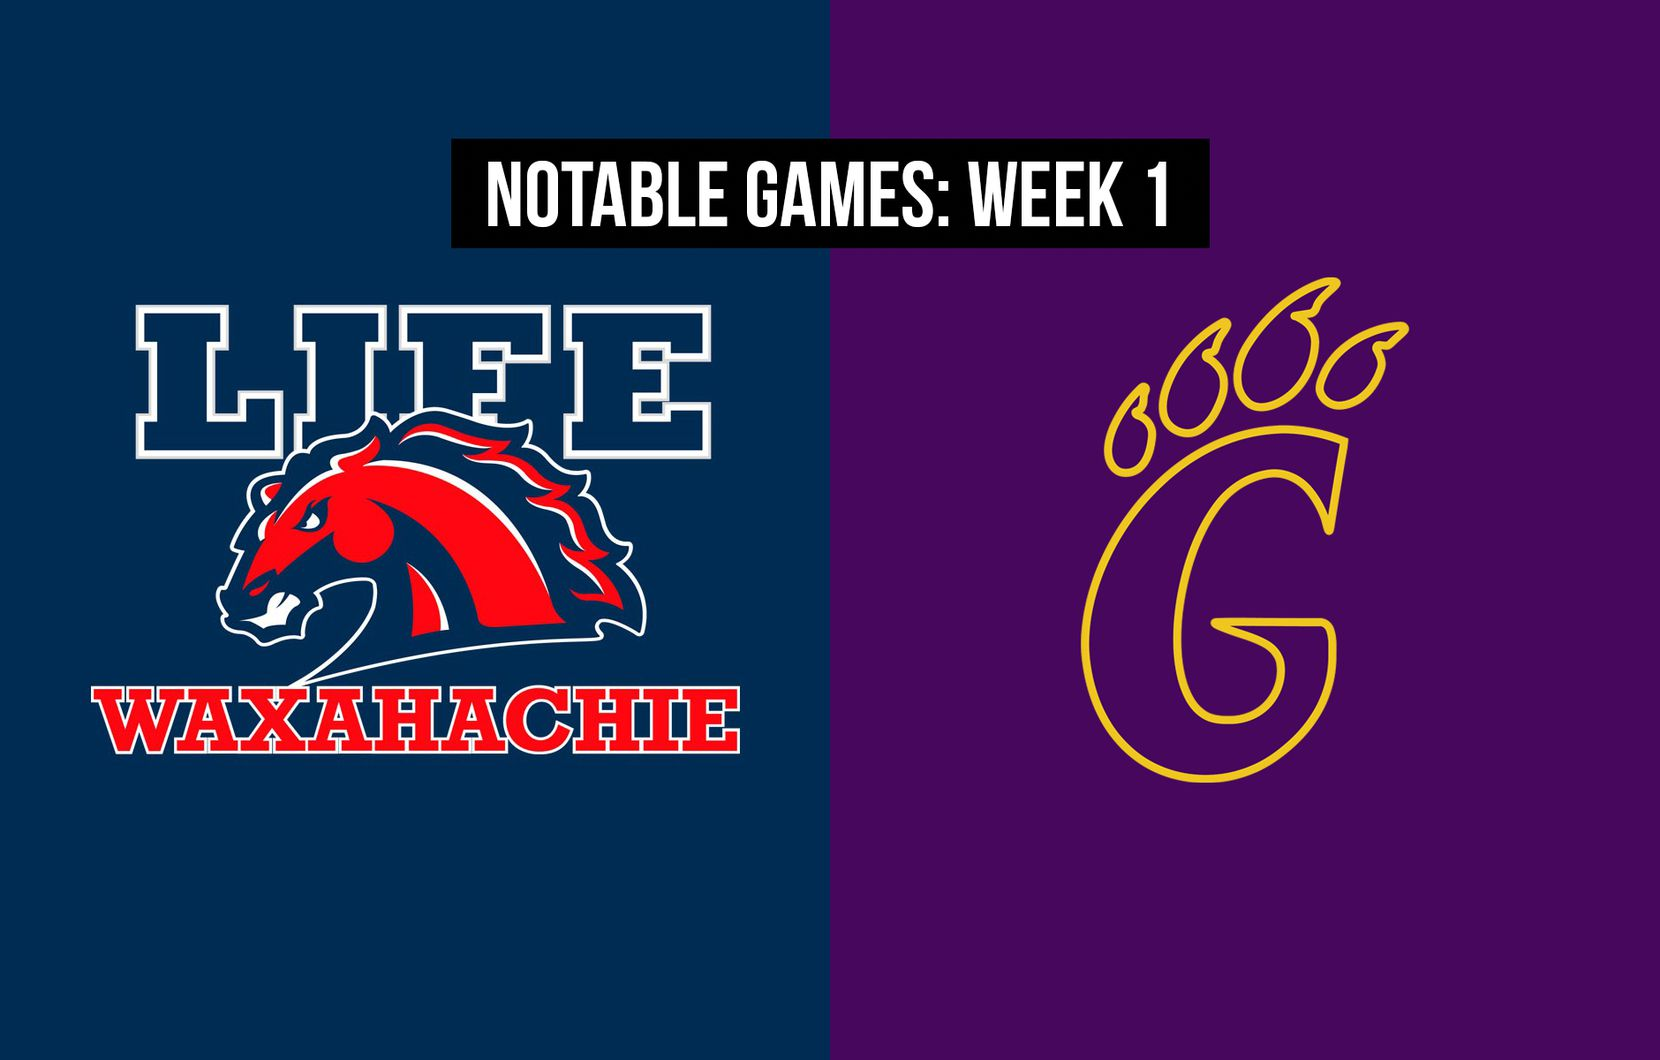 Notable games, Week 1 of the 2020 season: Life Waxahachie vs. Godley.